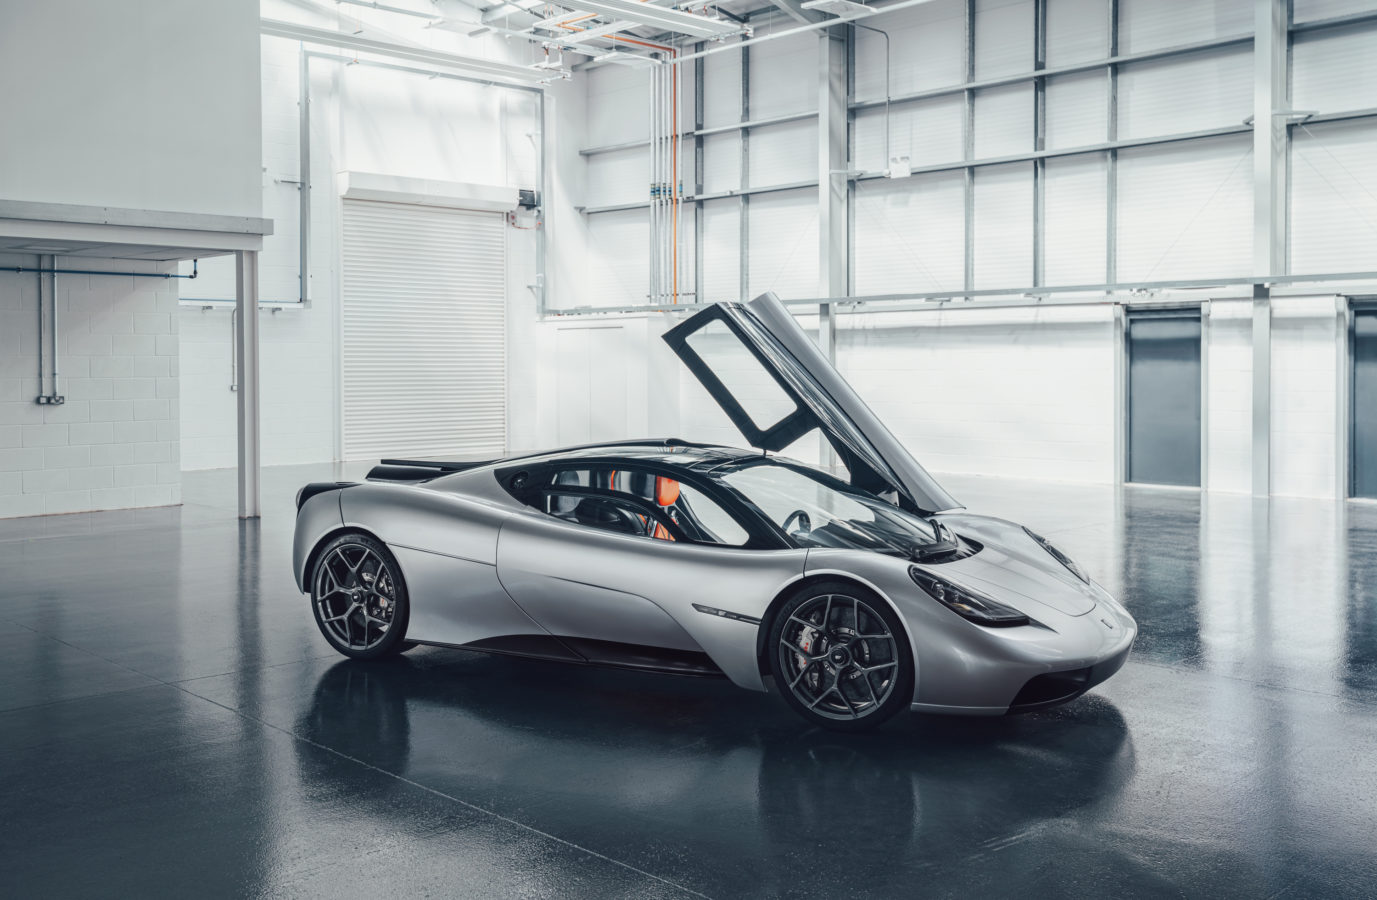 The Greatest Supercar Ever Made Gets a Re-Boot with the New Gordon Murray T50